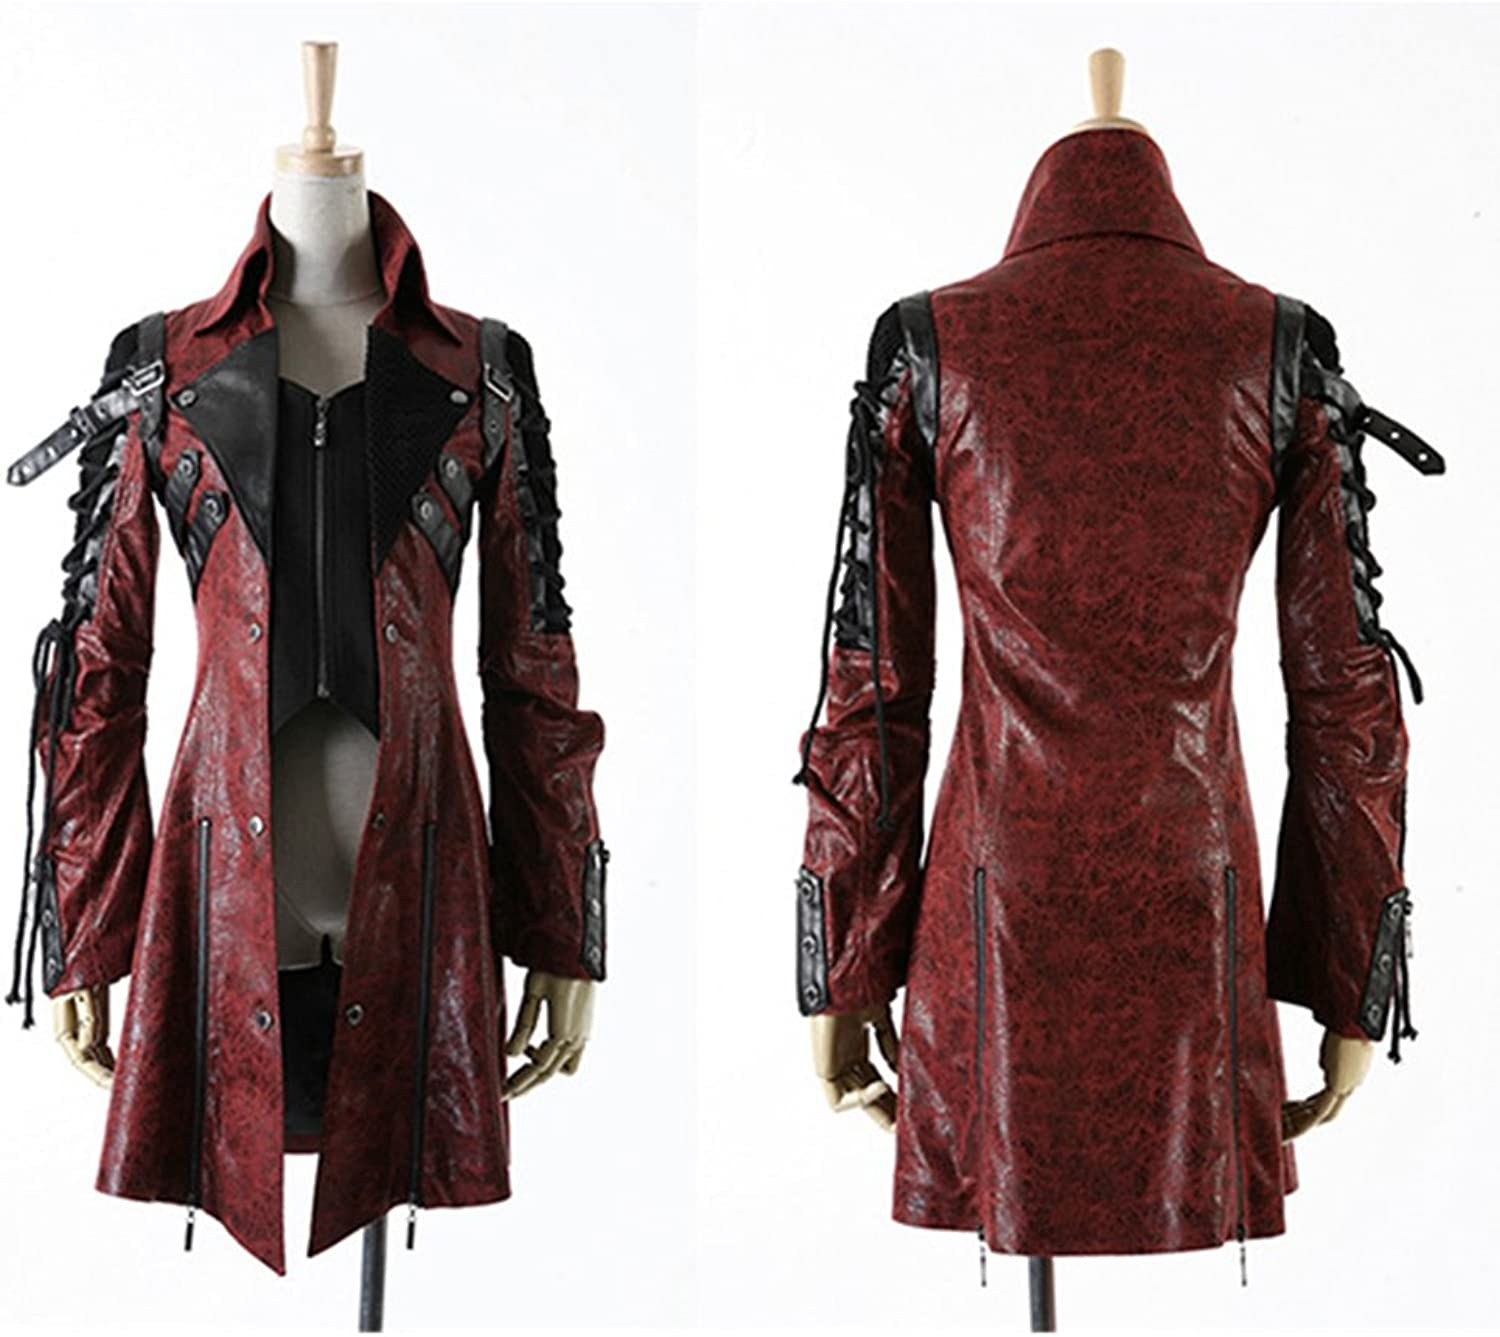 PUNK Gothic Vintage Faux Leather Long Jacket Coats Women Steampunk Autumn Winter Fashion Windbreakers